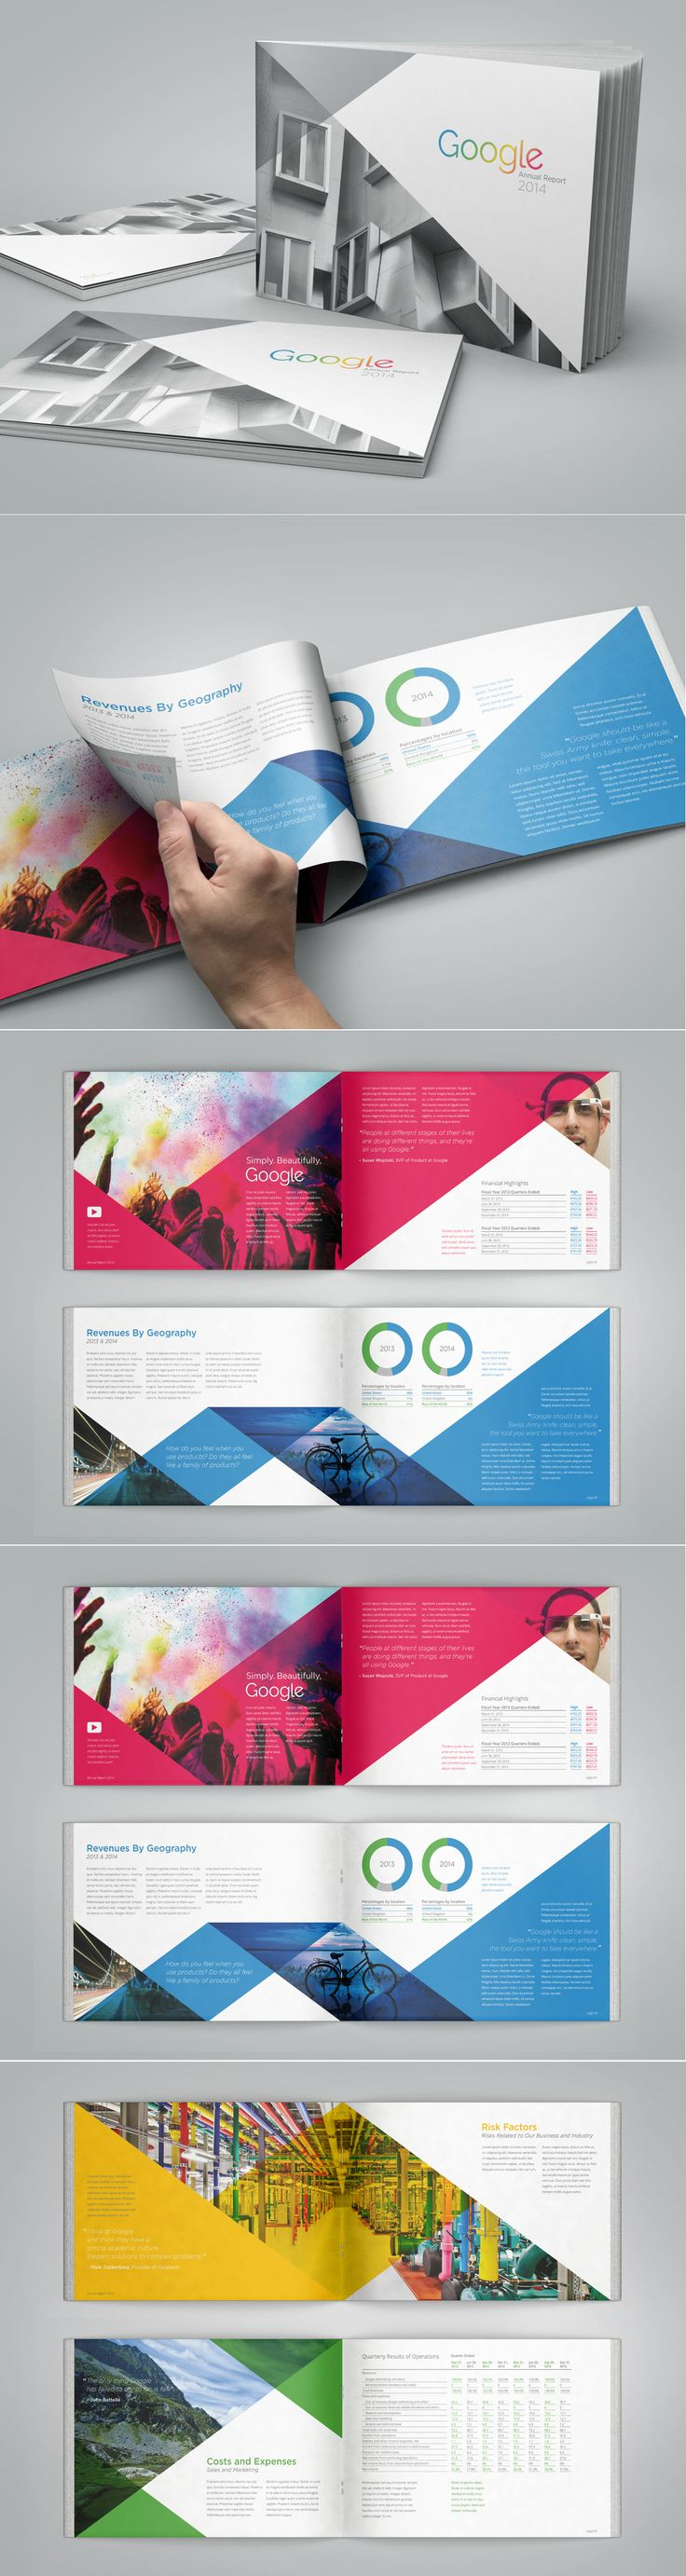 Google annual report (concept)